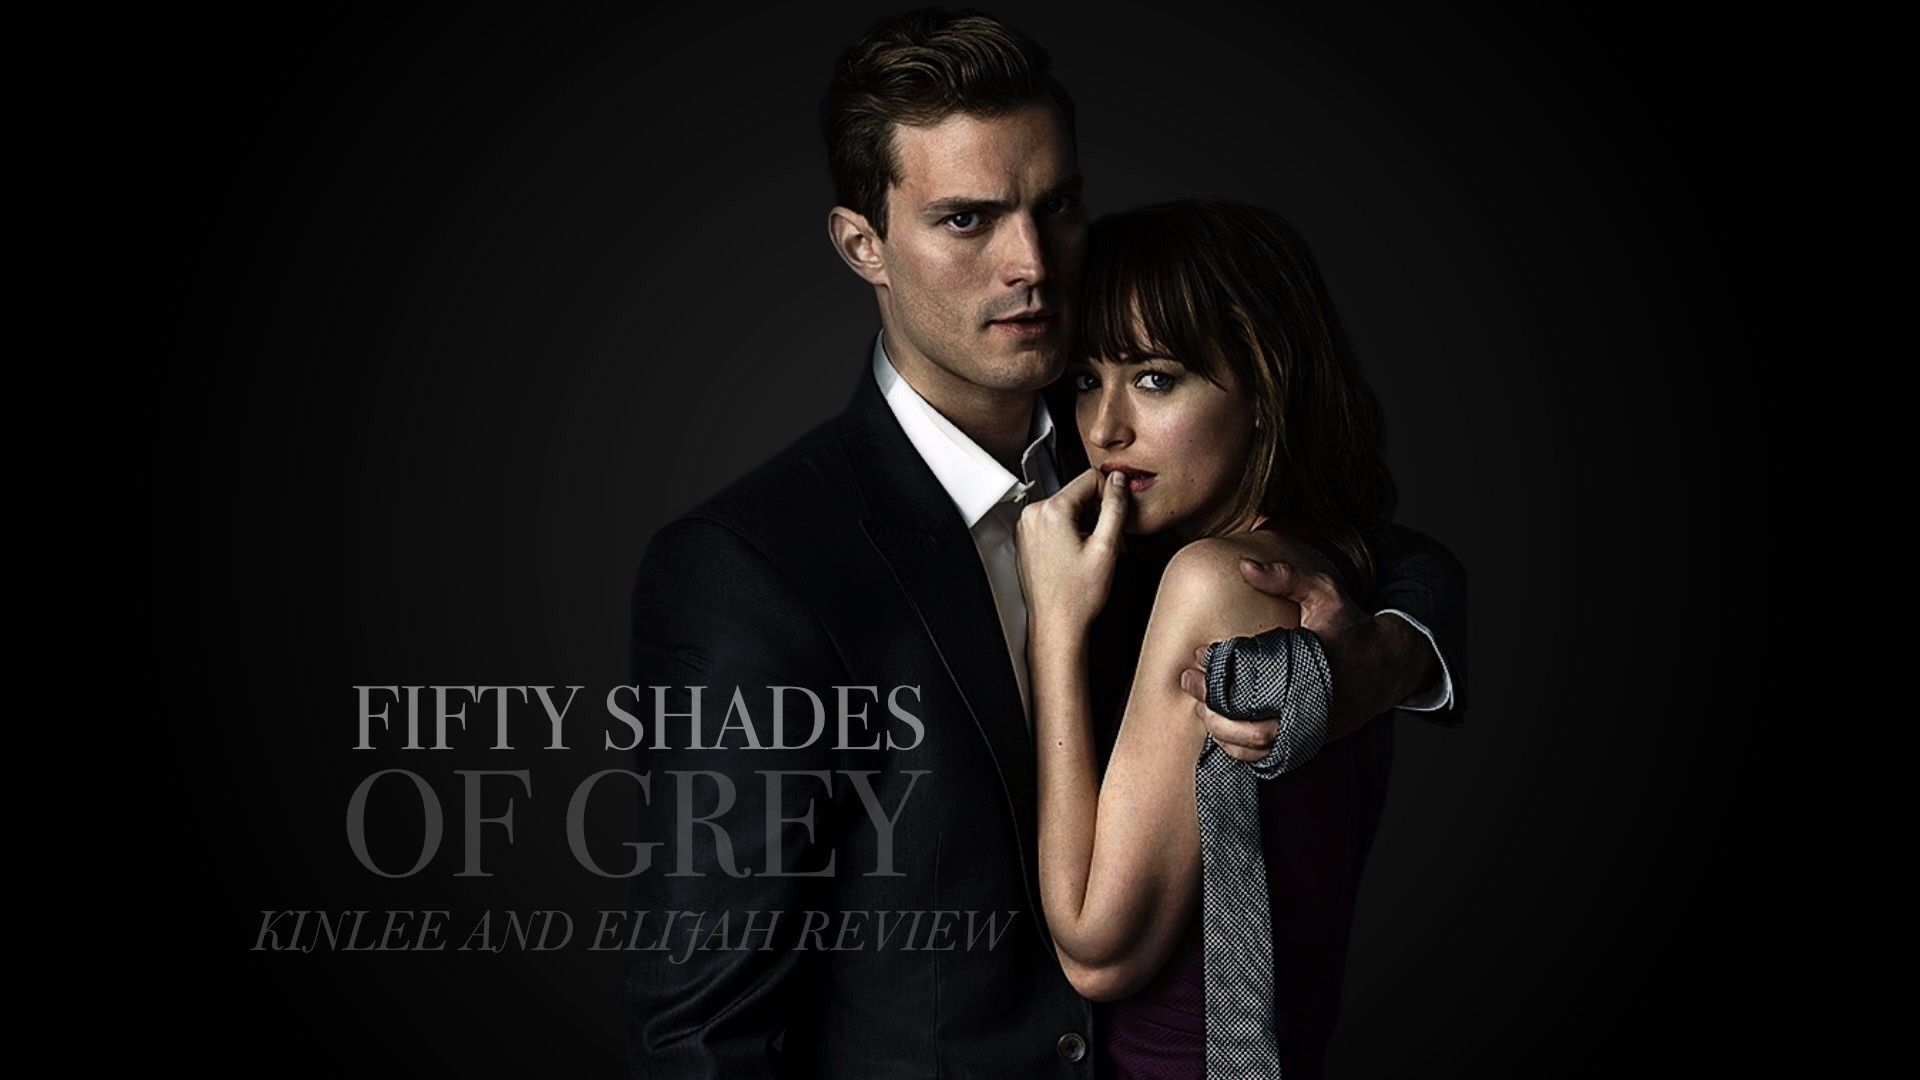 Fifty Shades of Grey Wallpapers - Top Free Fifty Shades of Grey Backgrounds  - WallpaperAccess